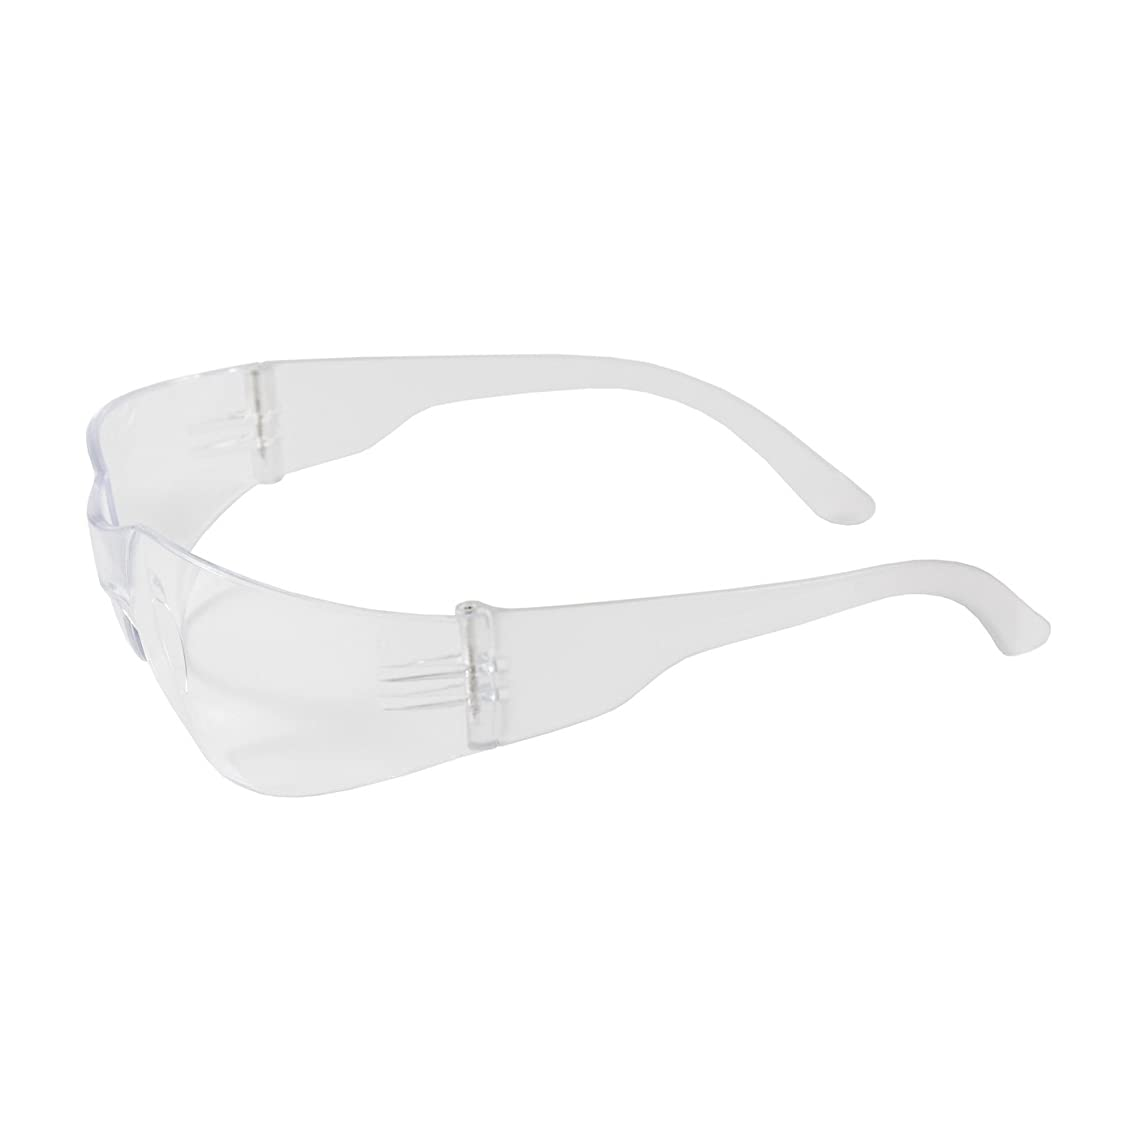 Zenon Z12 250-01-0900 Rimless Safety Glasses with Clear Temple, Clear Lens and Anti-Scratch Coating